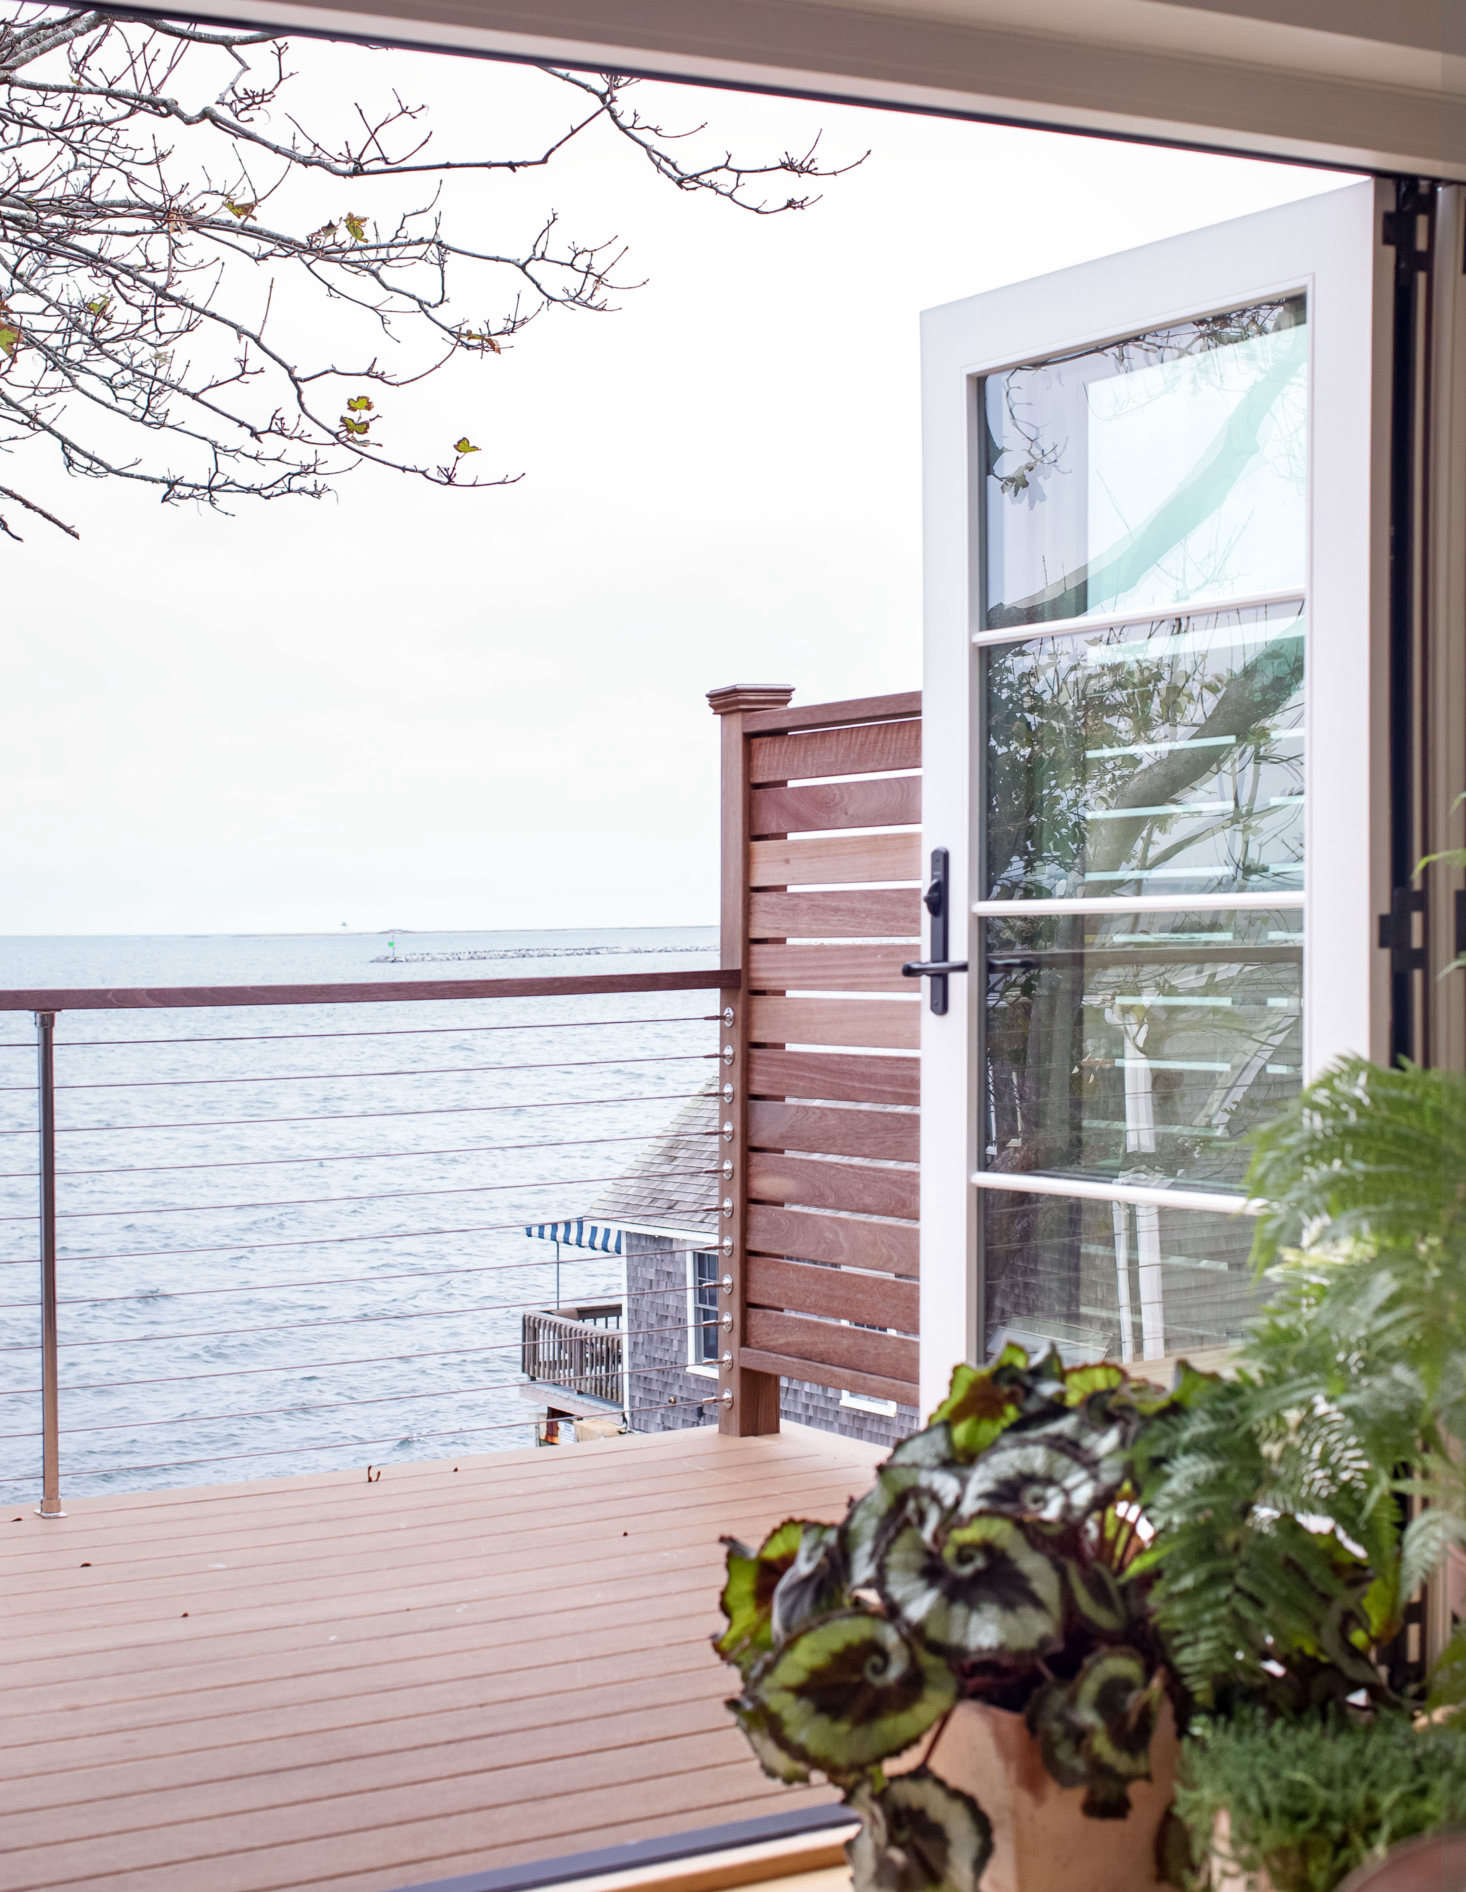 Accordion doors open fully onto the deck, blurring the lines between indoors and out. Here, clean marine accents like steel cable railings enhance the updated nautical feel.